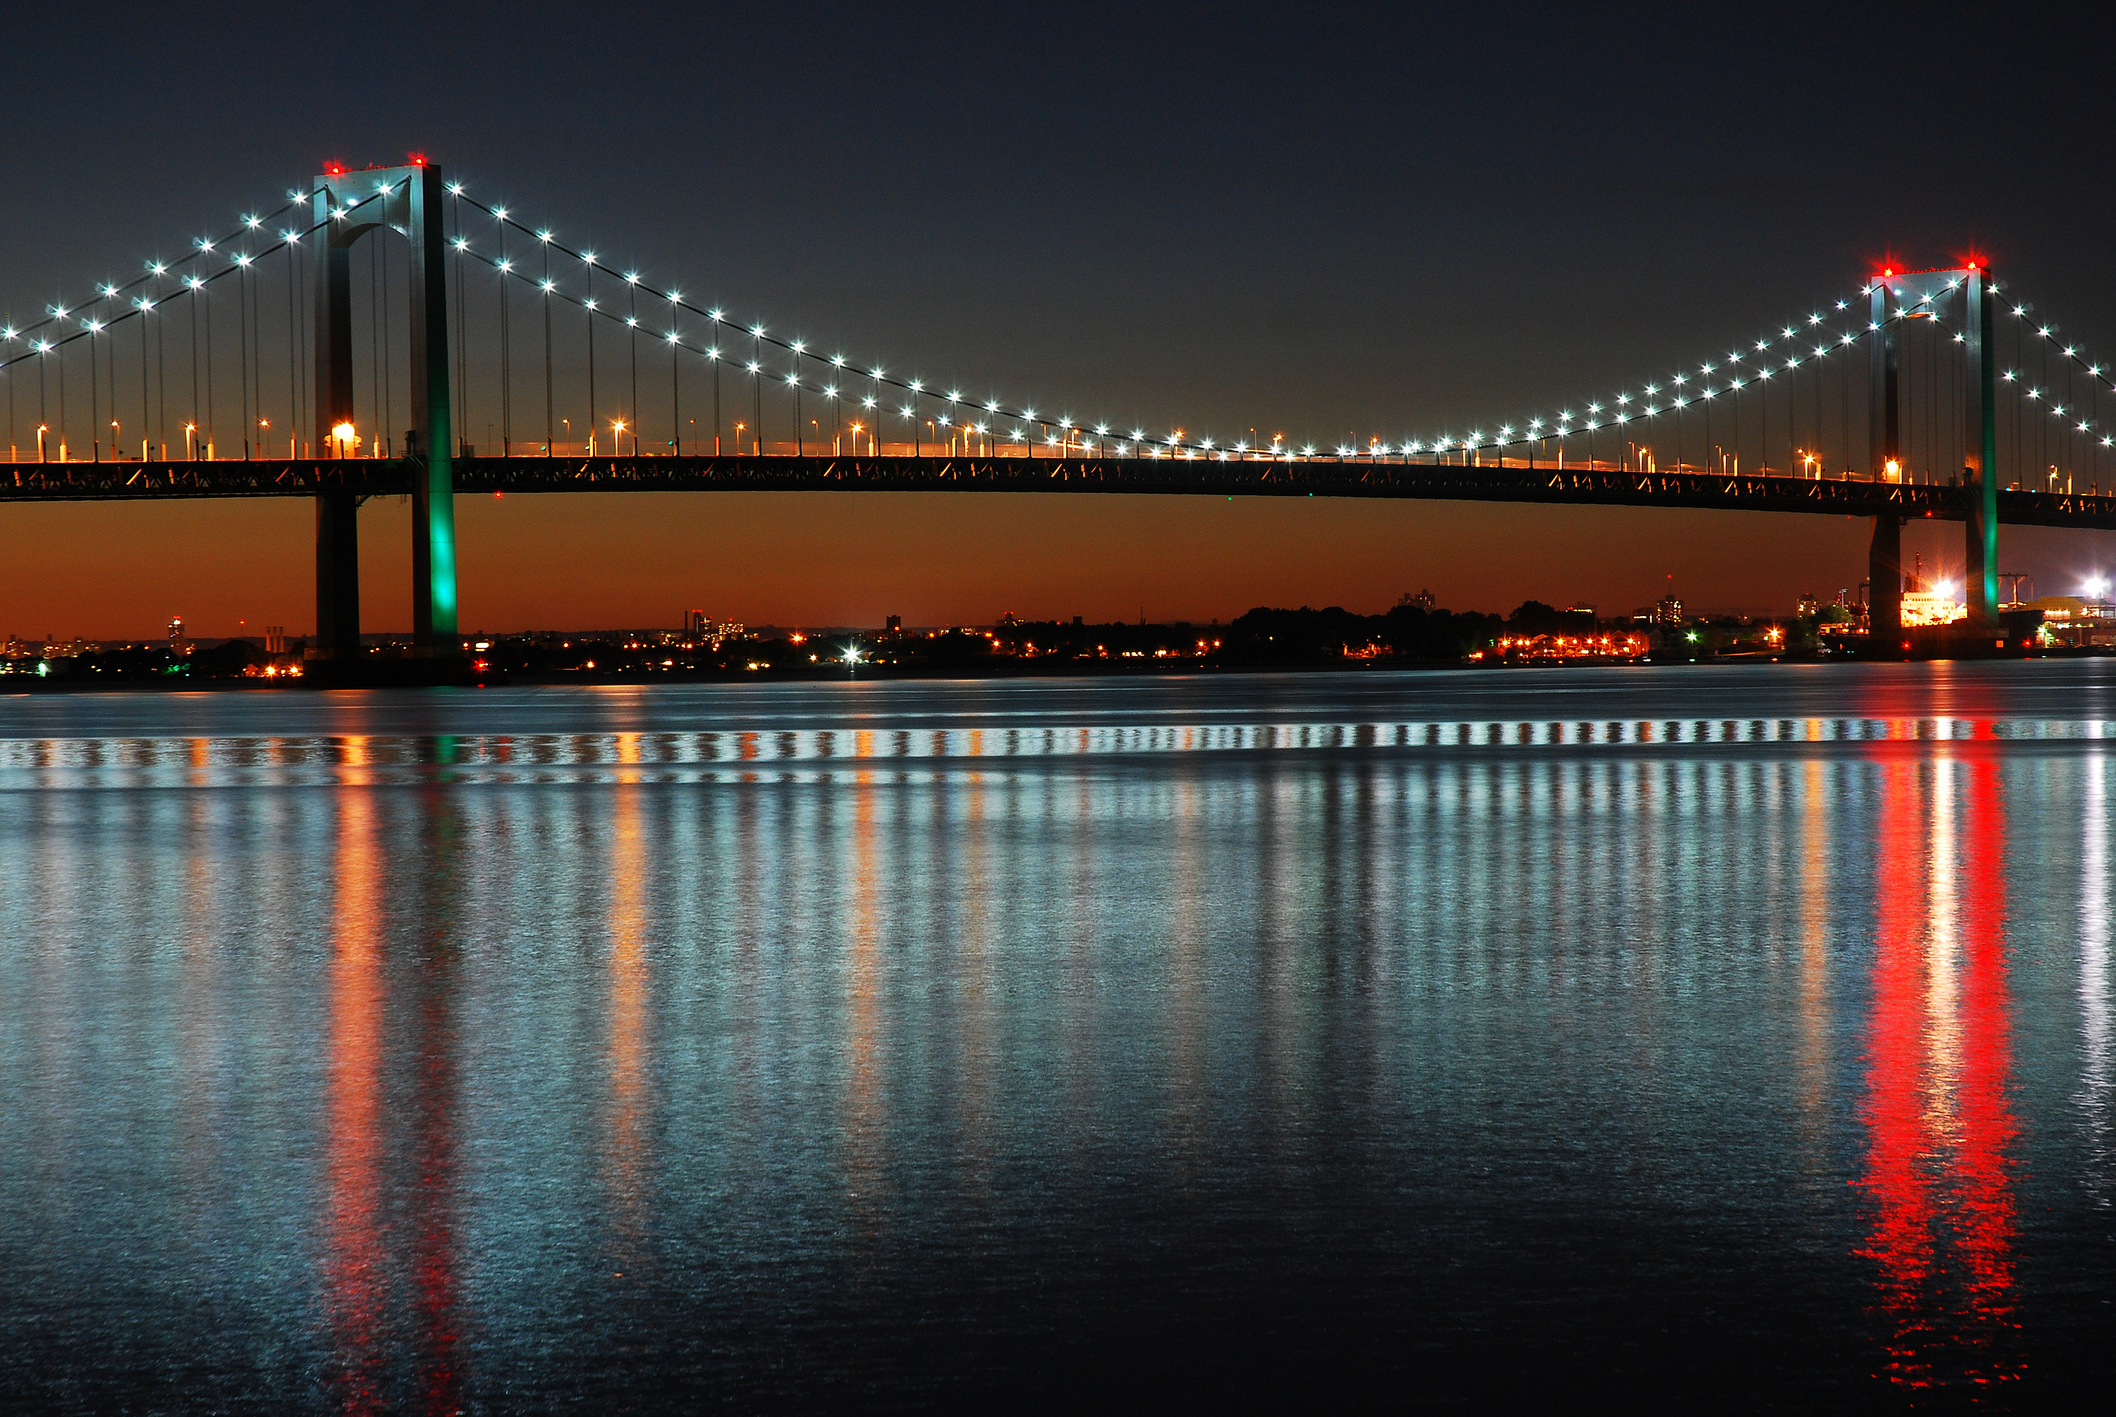 The Throgs Neck Bridge in NYC will have half priced tolls at night for truckers